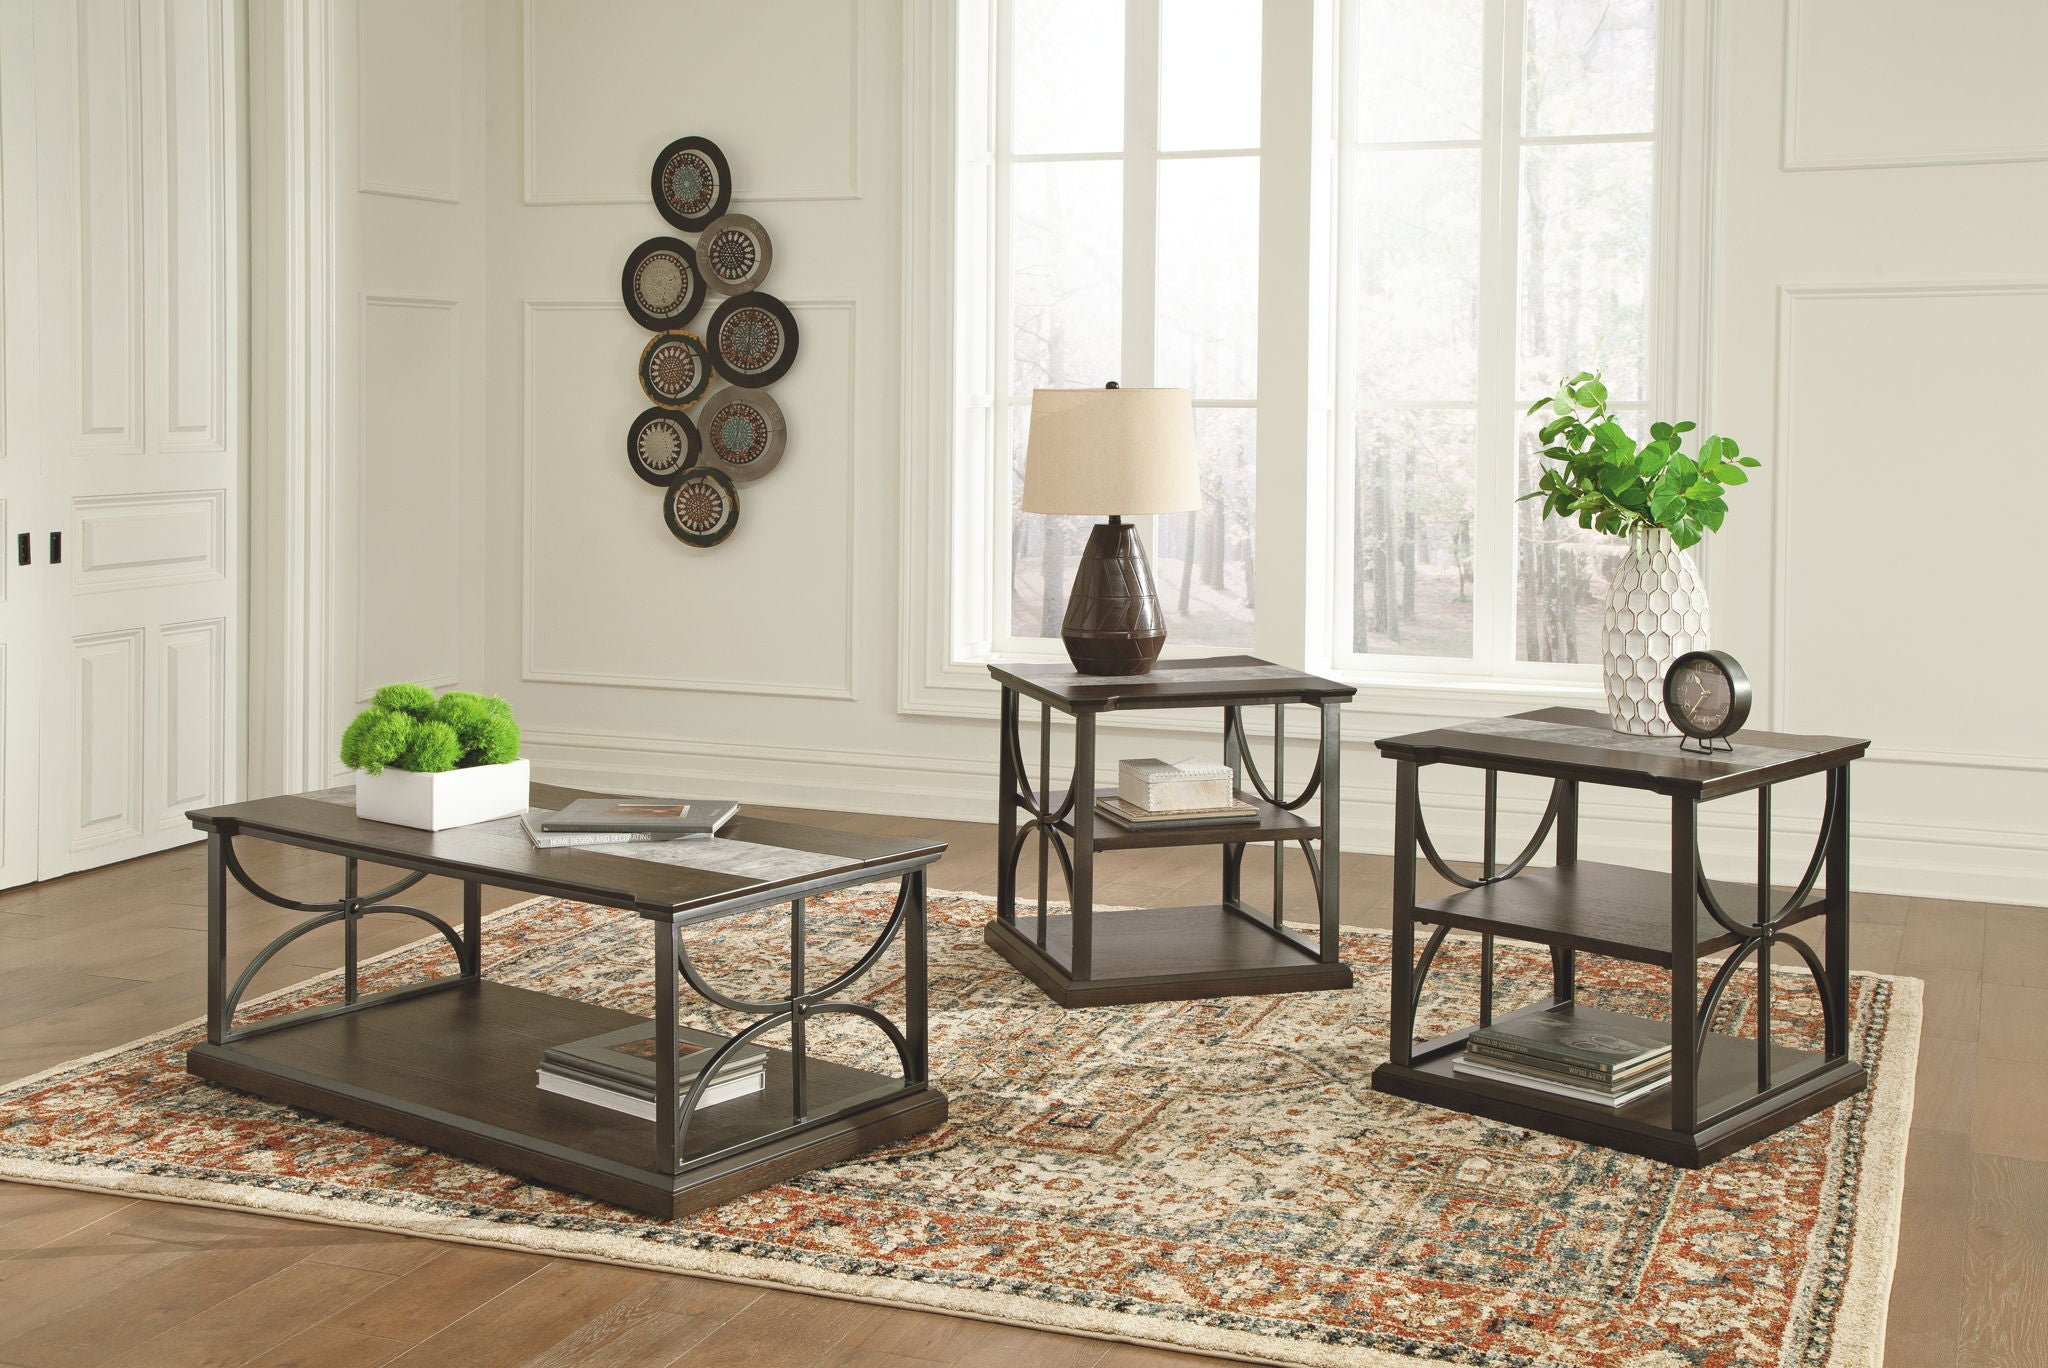 Carisbry Table (Set of 3)